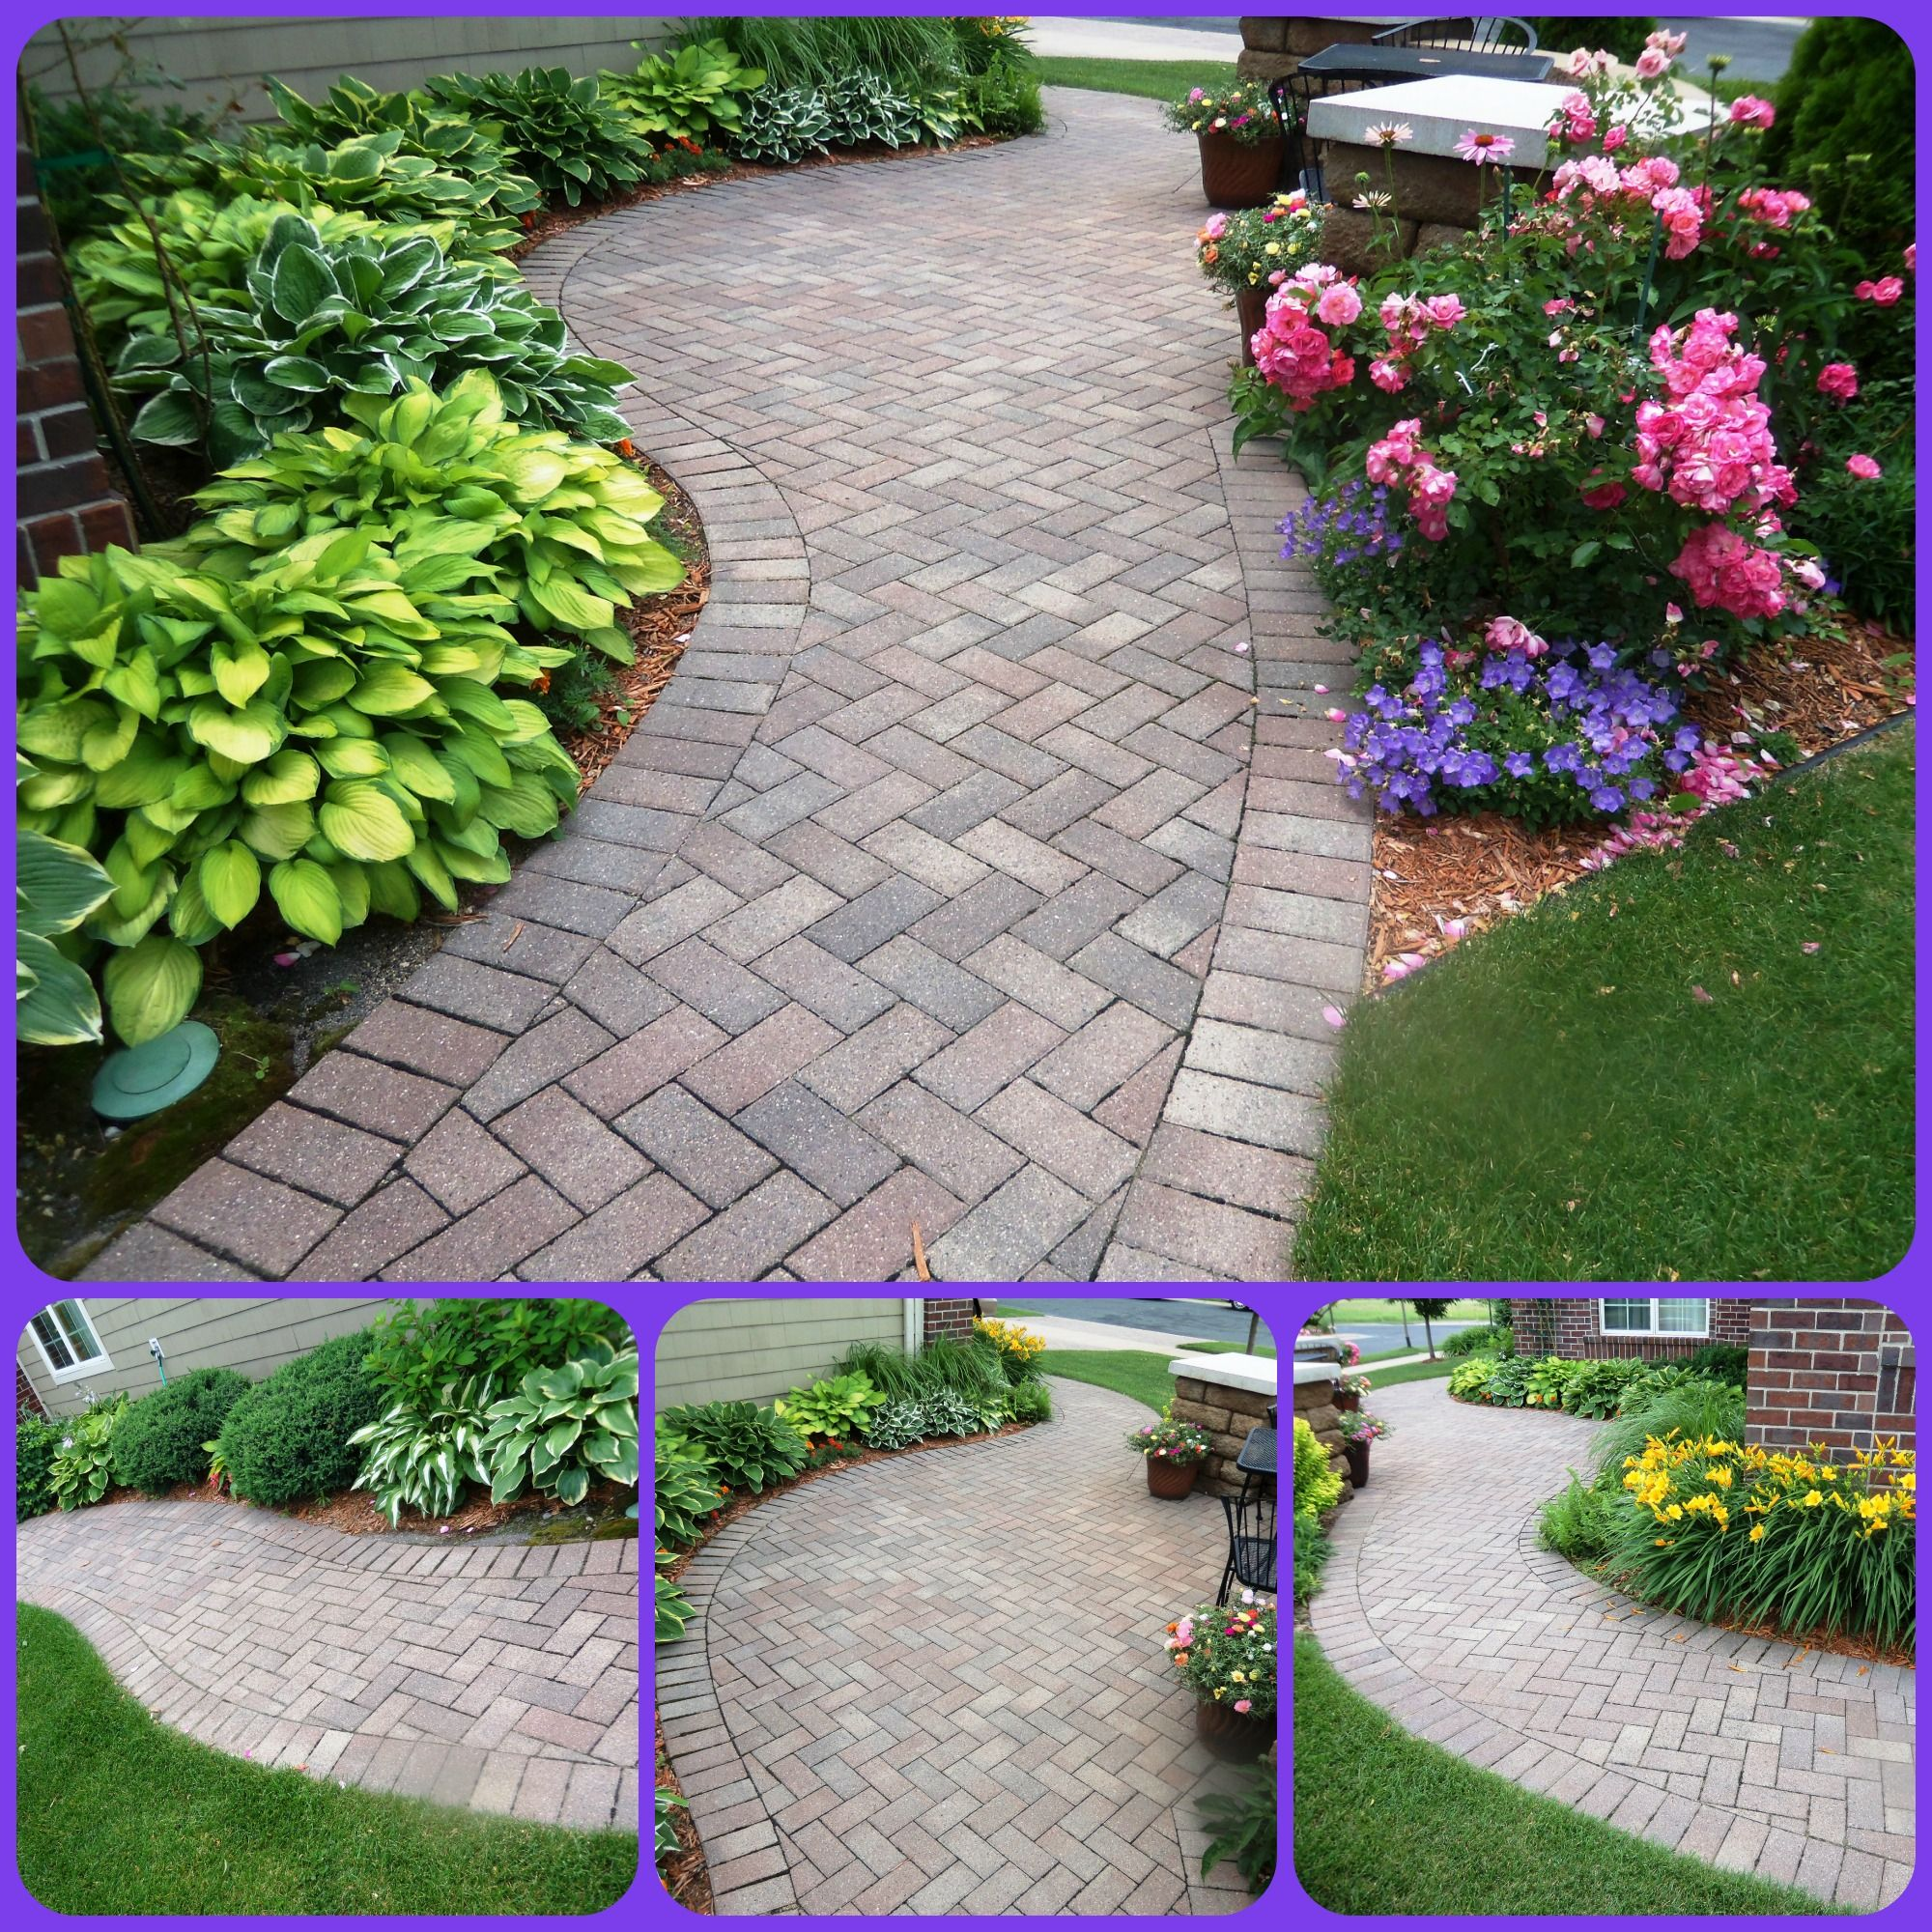 Patio Pathway Ideas: Stunning Paver Walkway Wrapping Around The Side Of Home